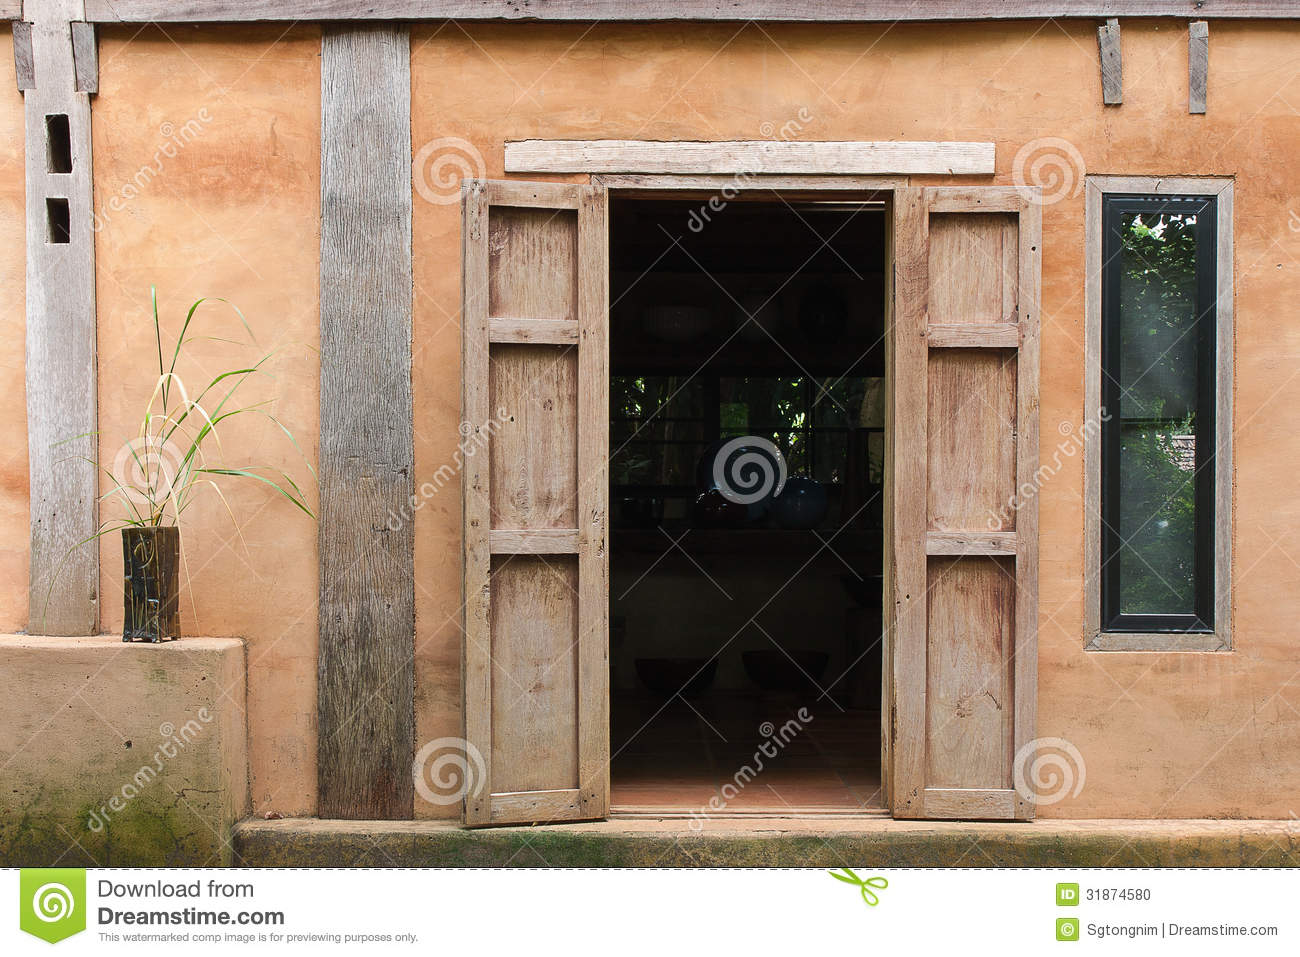 Old Town House Village Home Design Stock Photo - Image: 31874580